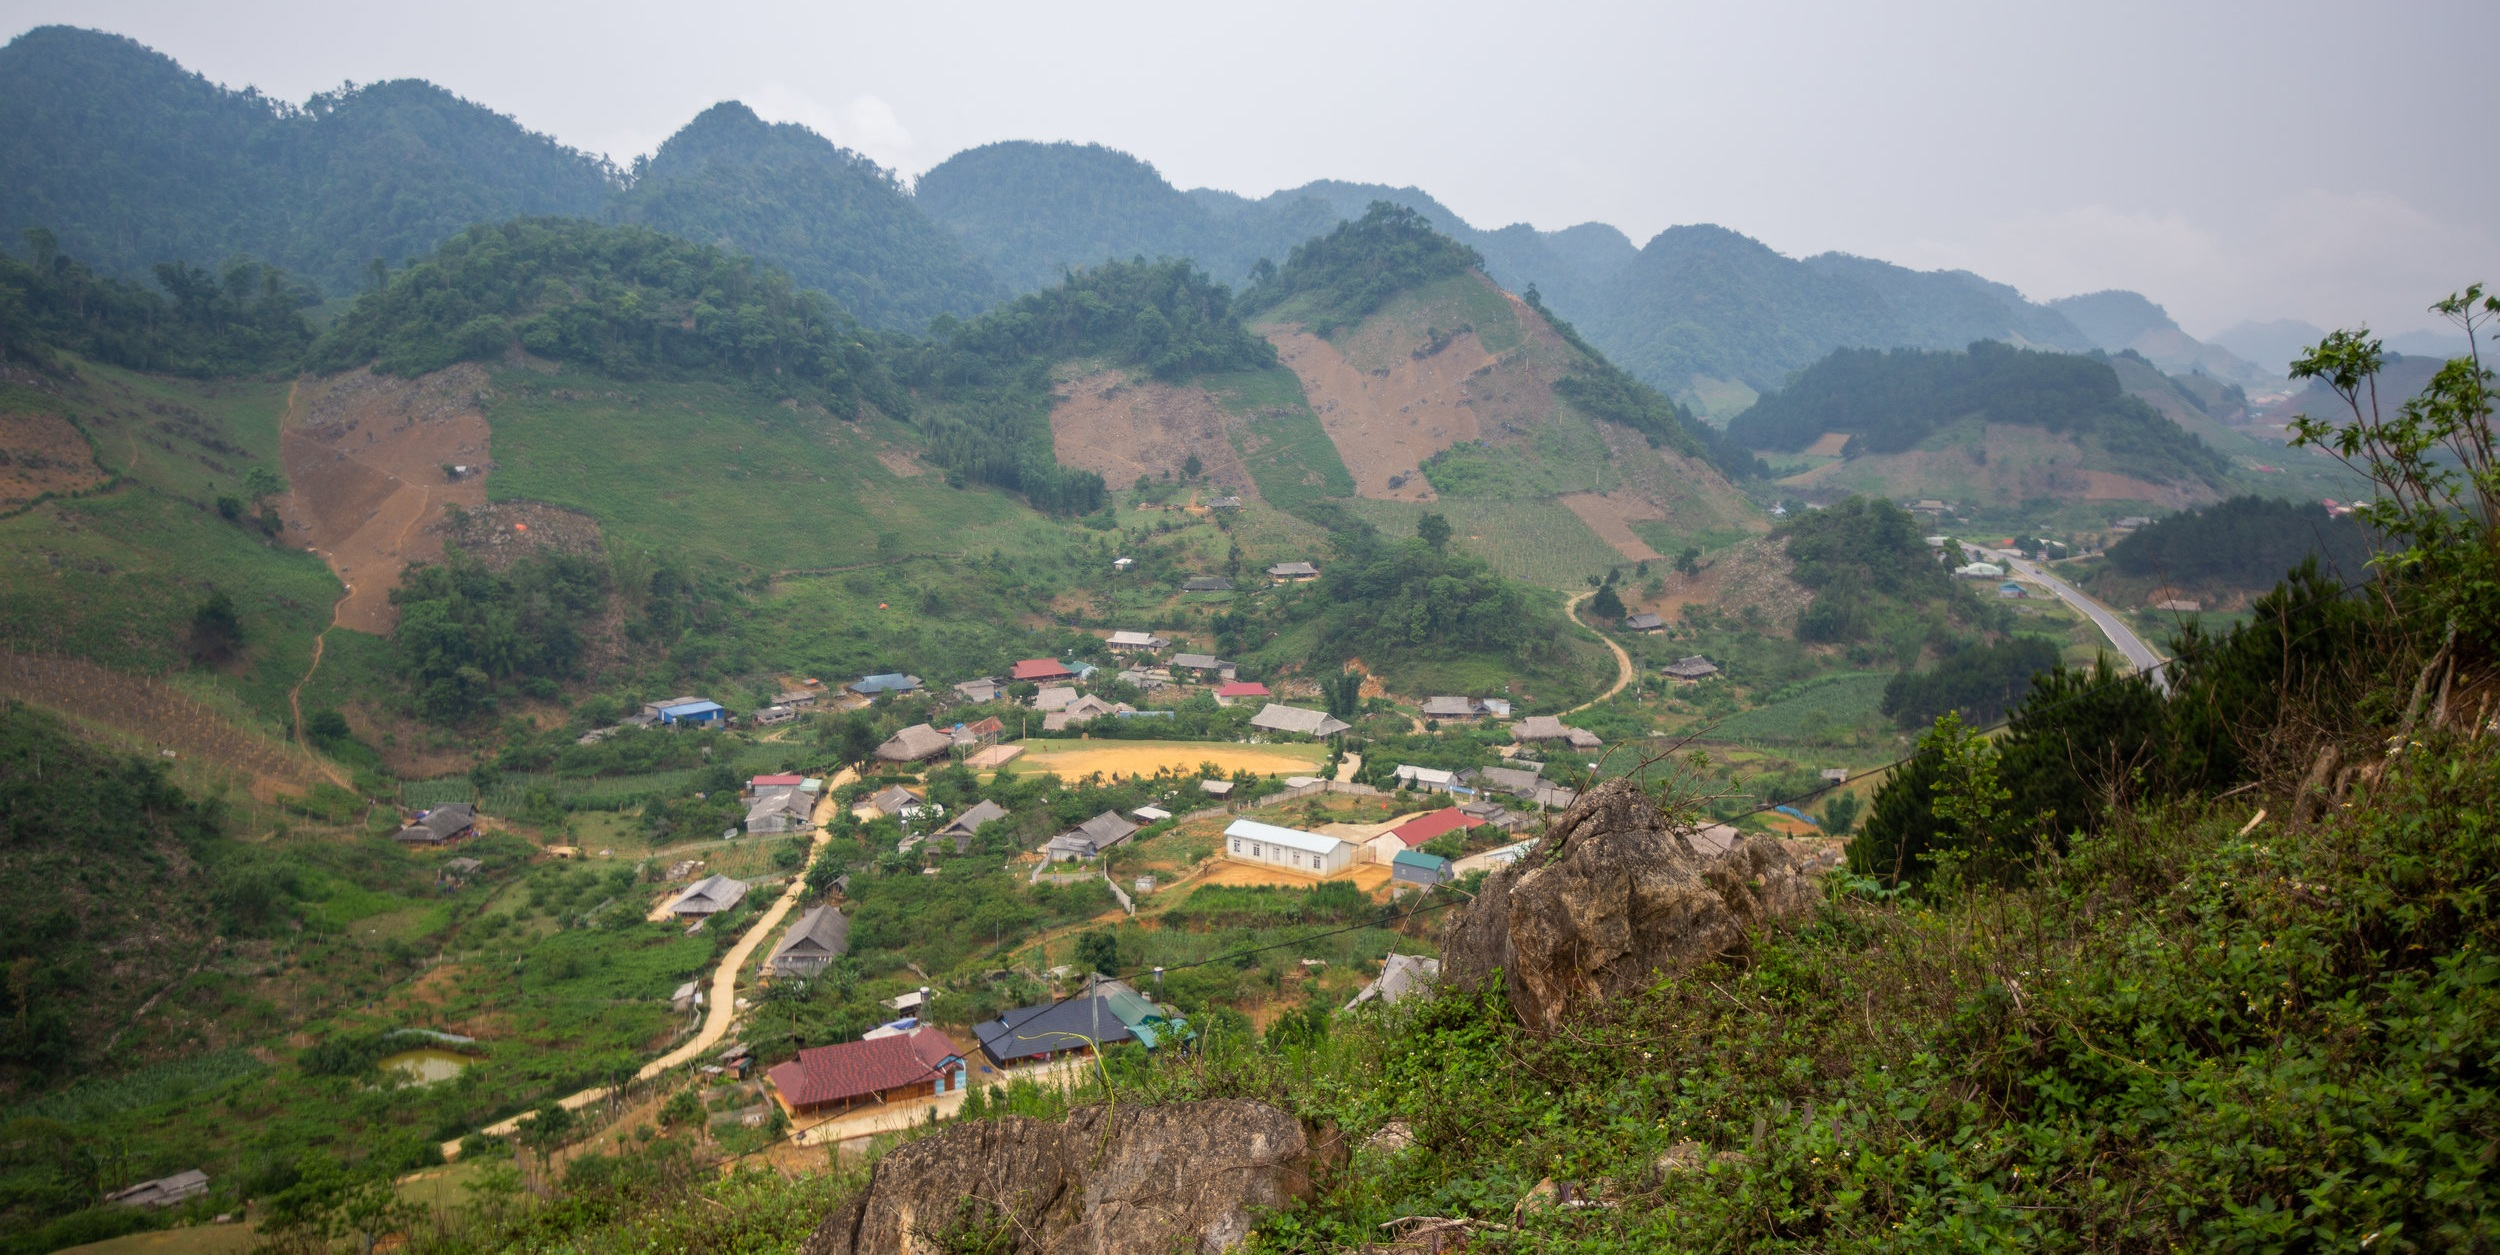 Overlooking Hua Tat Village